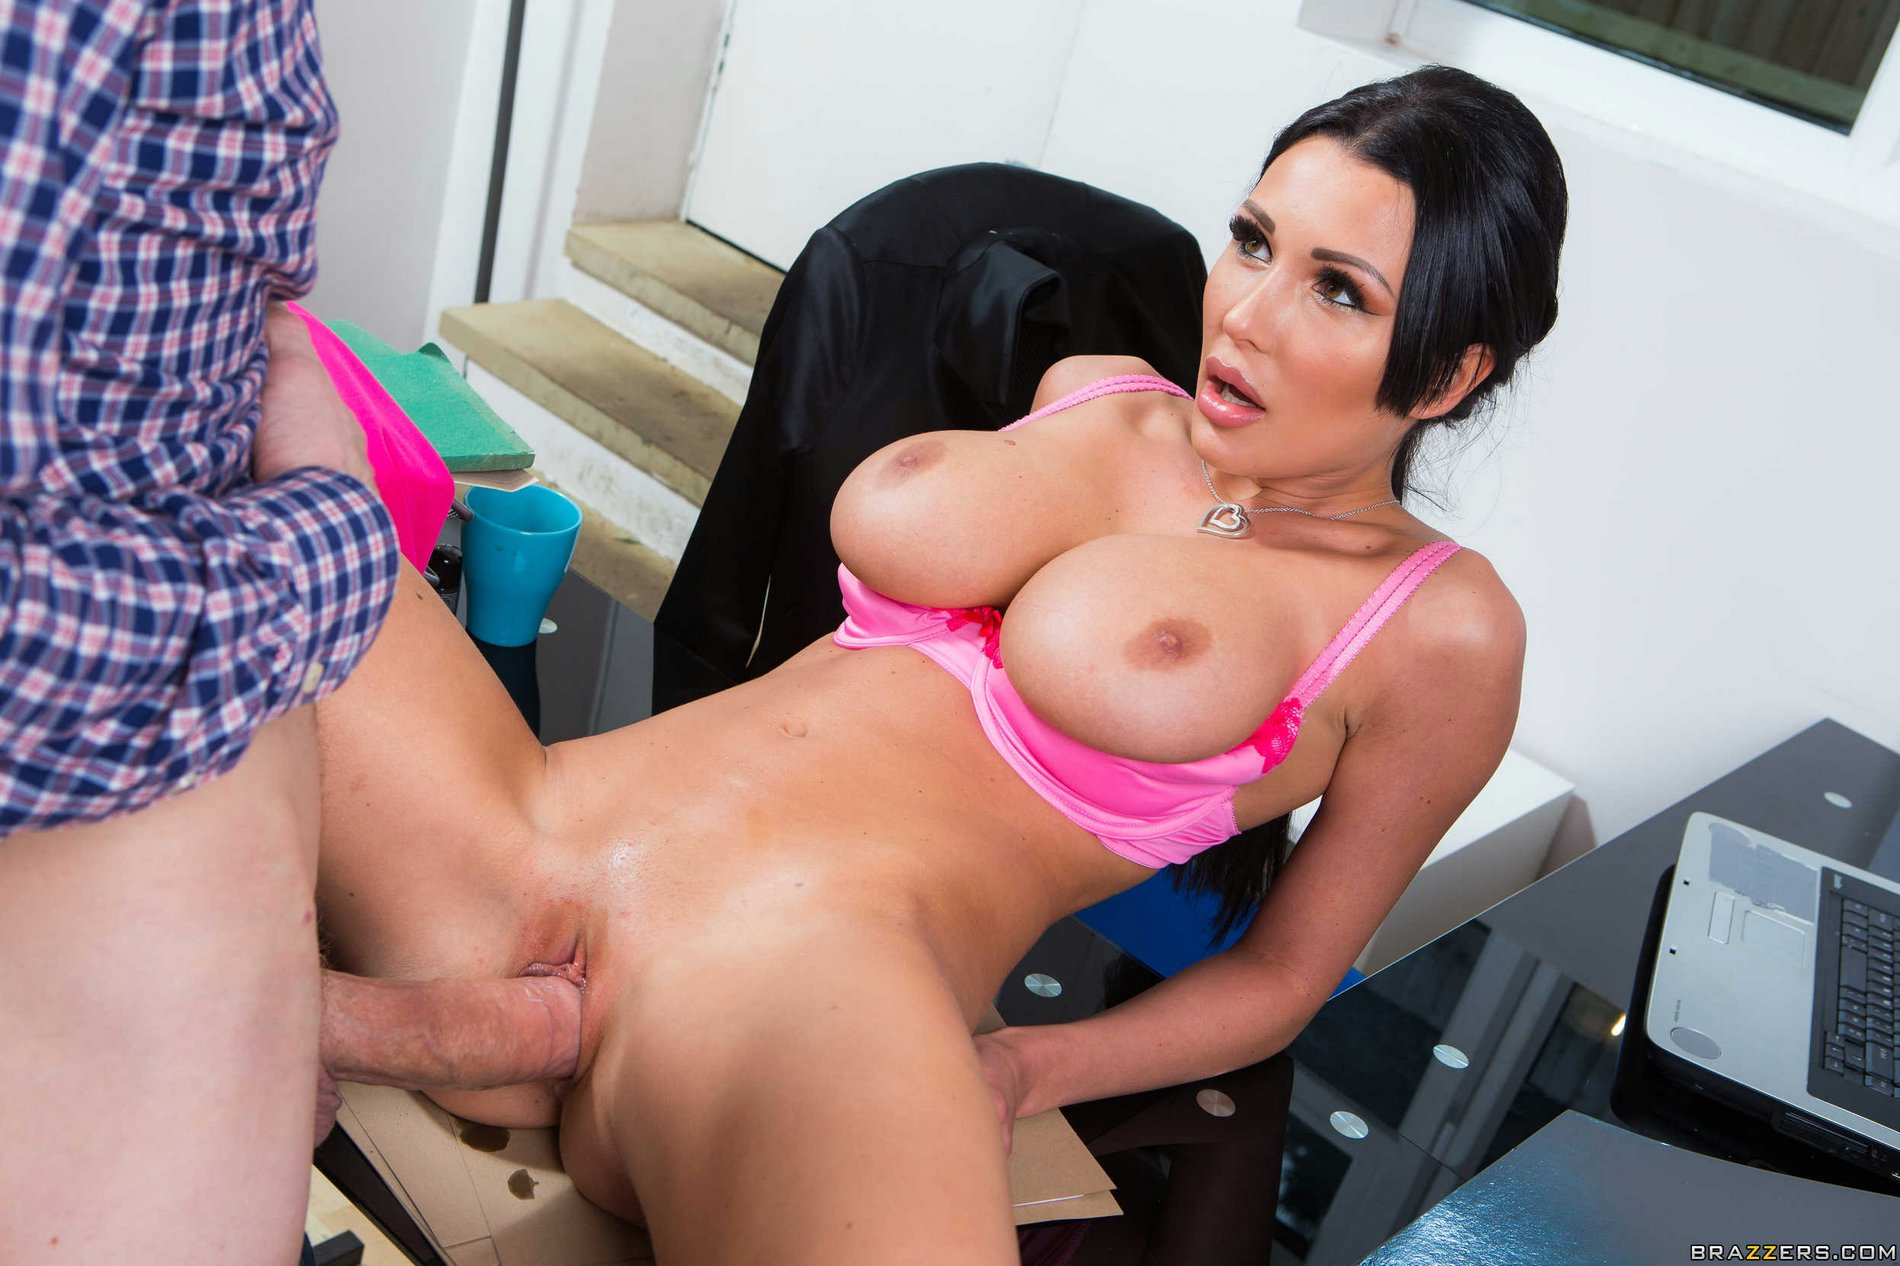 Latin babe kimberly fucked by bp agent